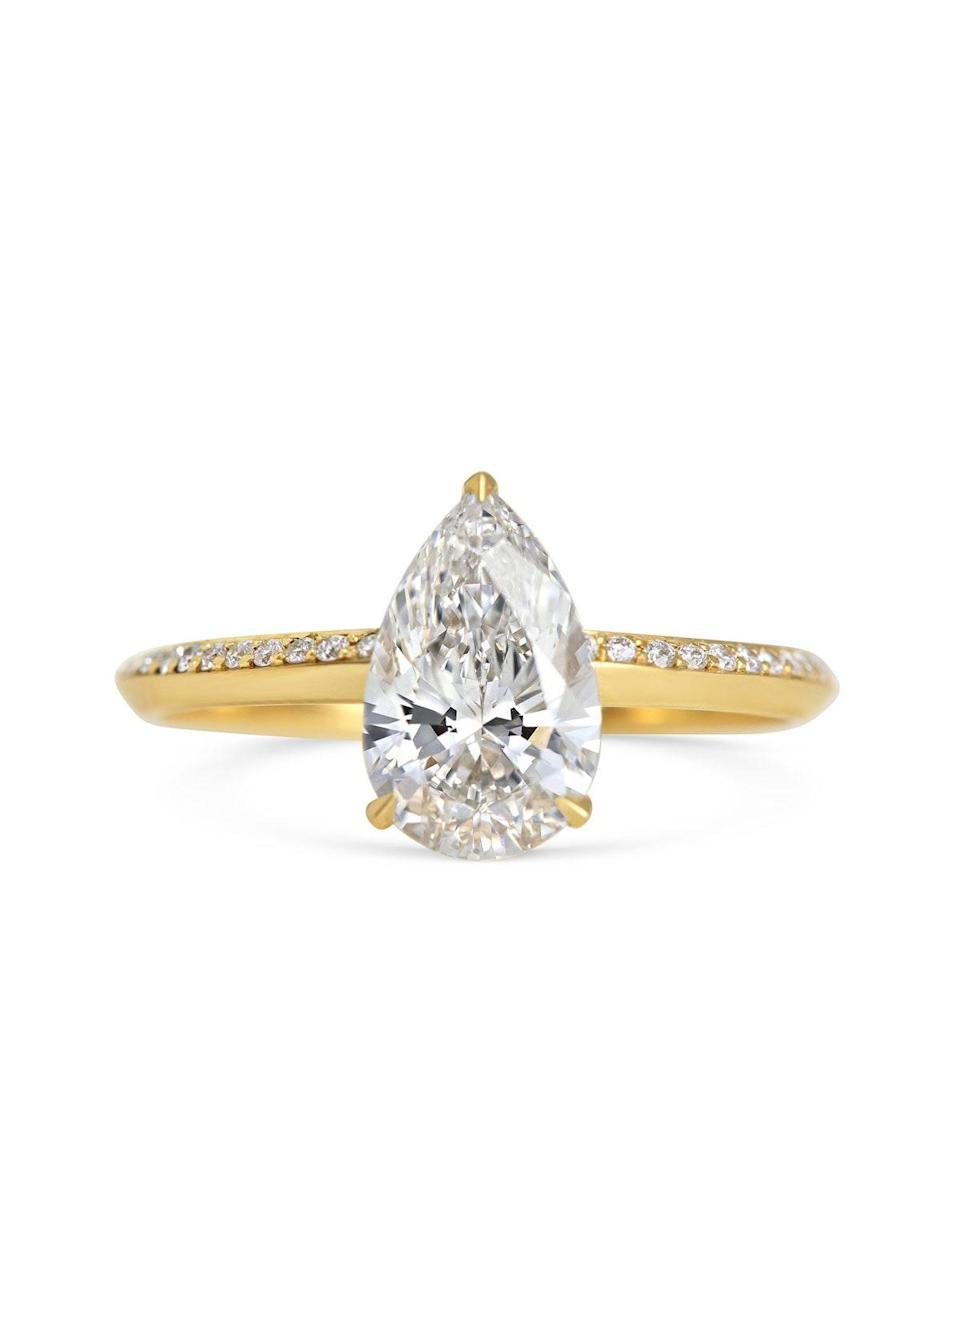 """Round diamonds have been one of the most popular engagement ring cuts for, well, <em>ever</em>. But Zimmerman says that fancy shapes—i.e., everything but classic round—are starting to trend. $9770, Rachel Boston. <a href=""""https://www.rachelboston.co.uk/collections/engagement-rings/products/lyra-ring"""" rel=""""nofollow noopener"""" target=""""_blank"""" data-ylk=""""slk:Get it now!"""" class=""""link rapid-noclick-resp"""">Get it now!</a>"""